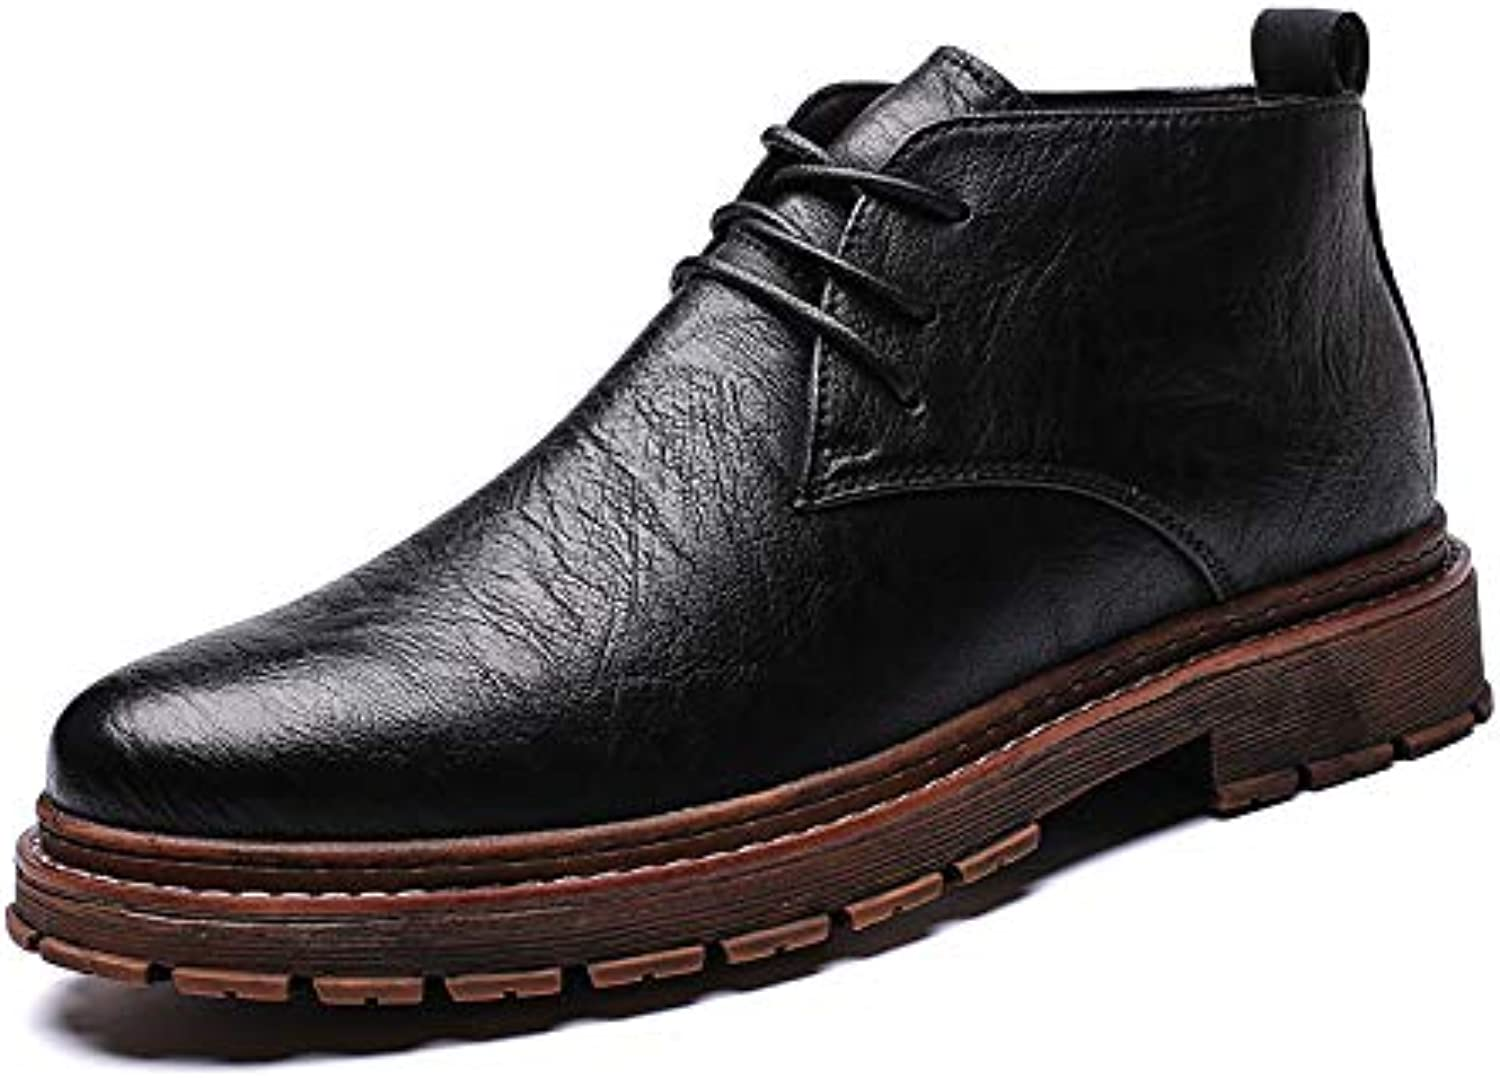 LOVDRAM Men'S shoes Leather shoes Men'S Increased Autumn New Men'S Business Casual shoes Youth Fashion Platform shoes